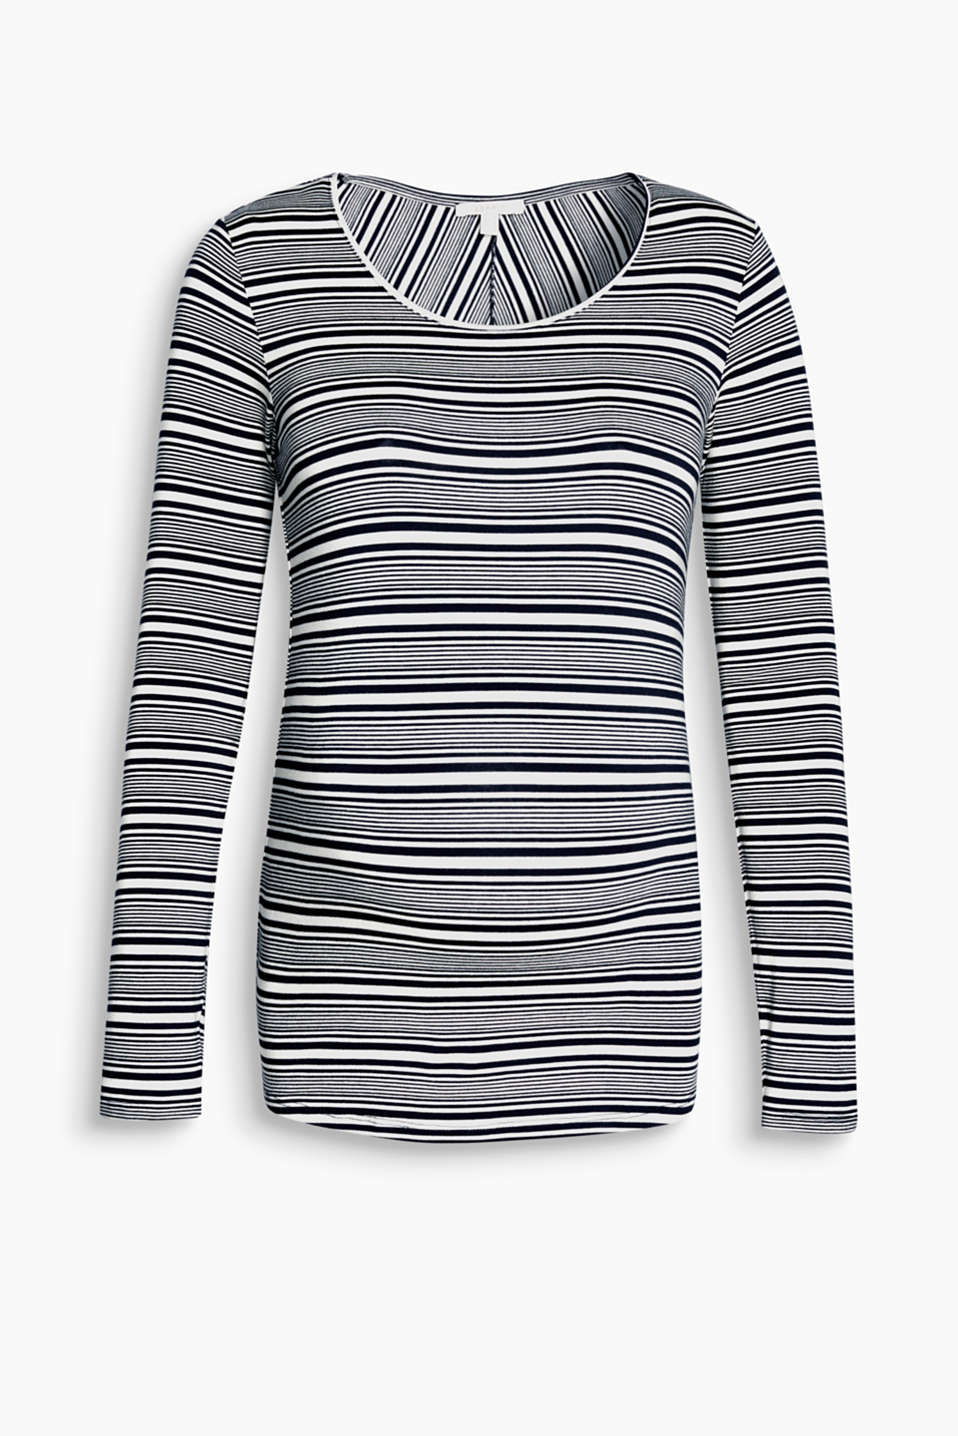 For during and after pregnancy: flowing stretch long sleeve top with a modern striped pattern